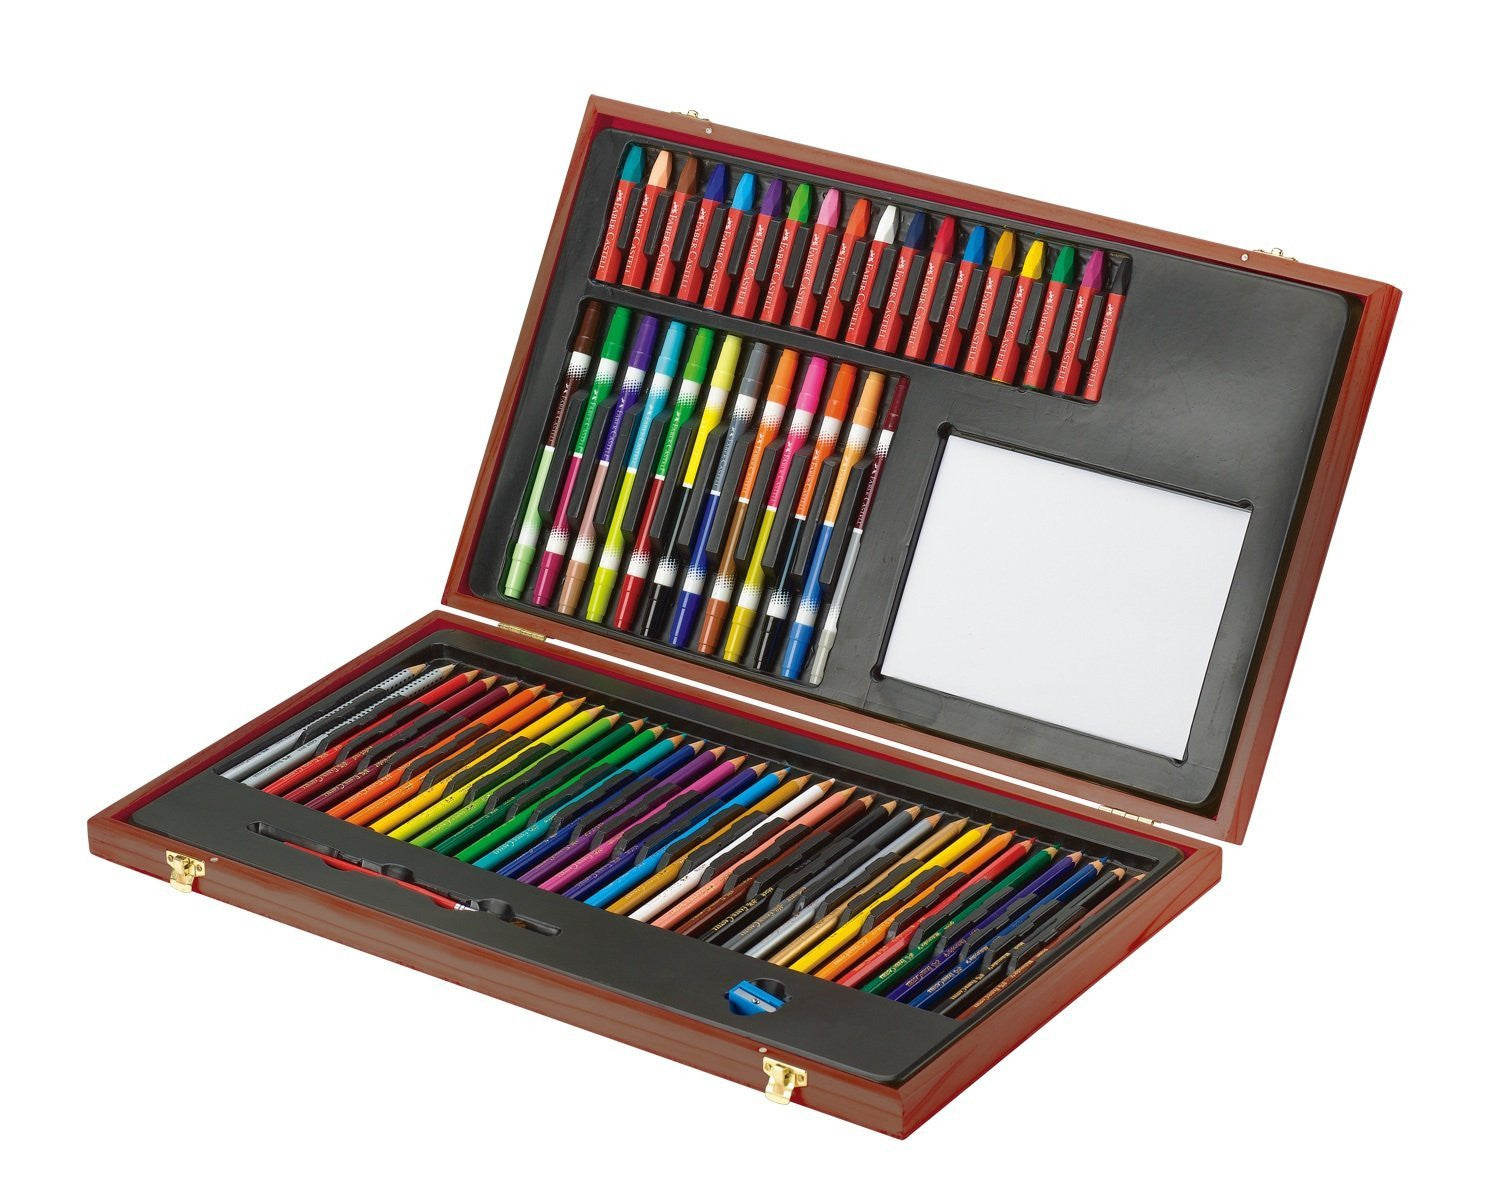 Deluxe Young Artist Essentials Art Set In Wooden Case by Faber-Castell - Off The Wall Toys and Gifts